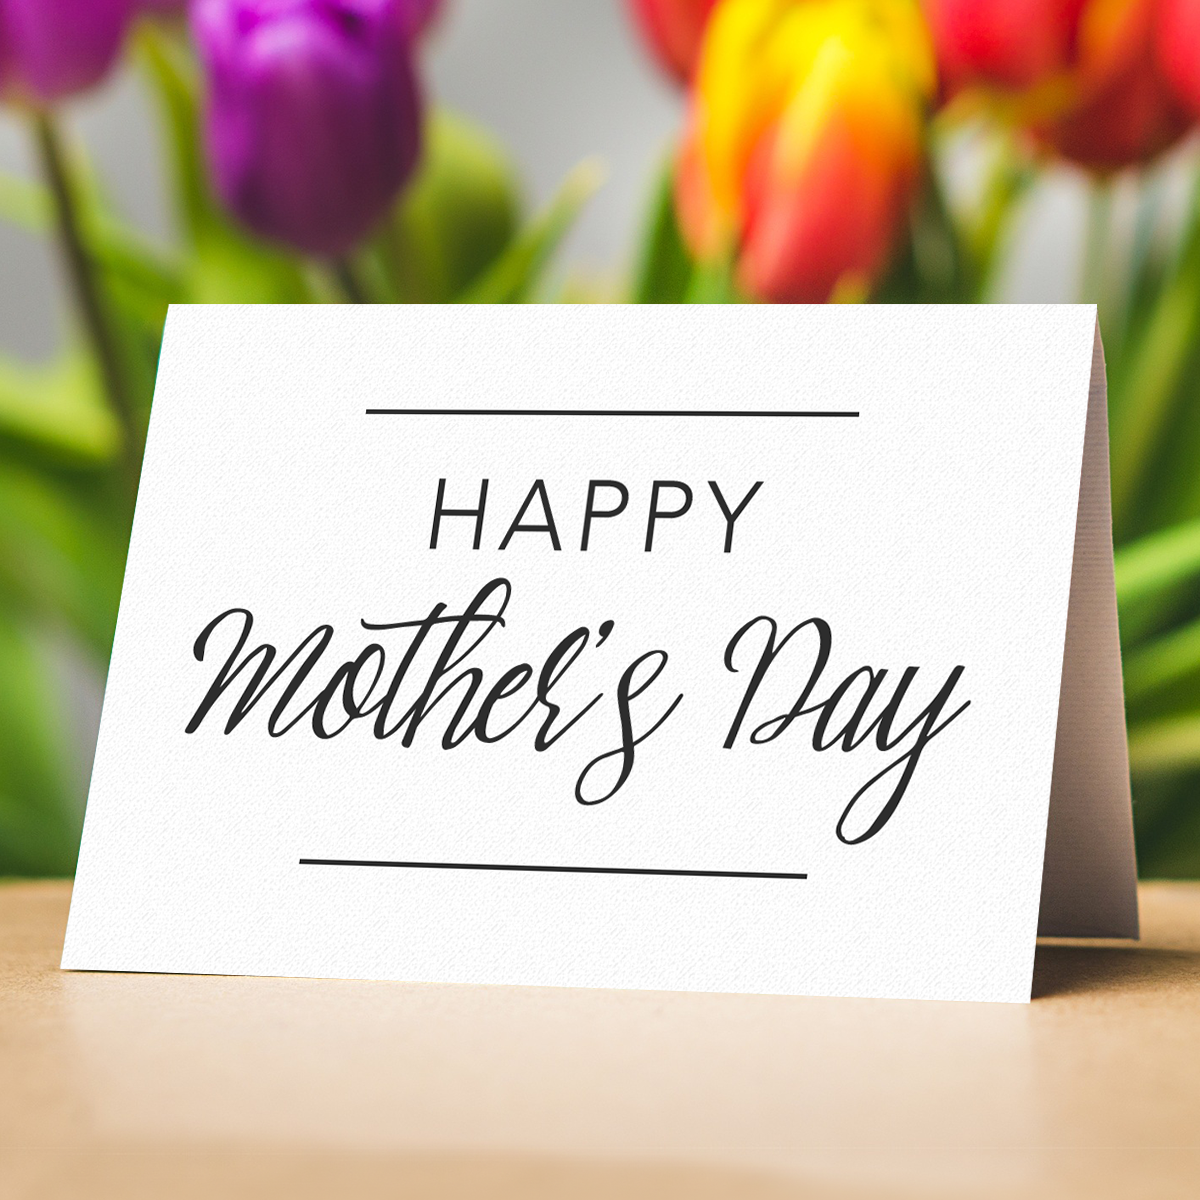 Happy Mother's Day to all the wonderful mothers out there